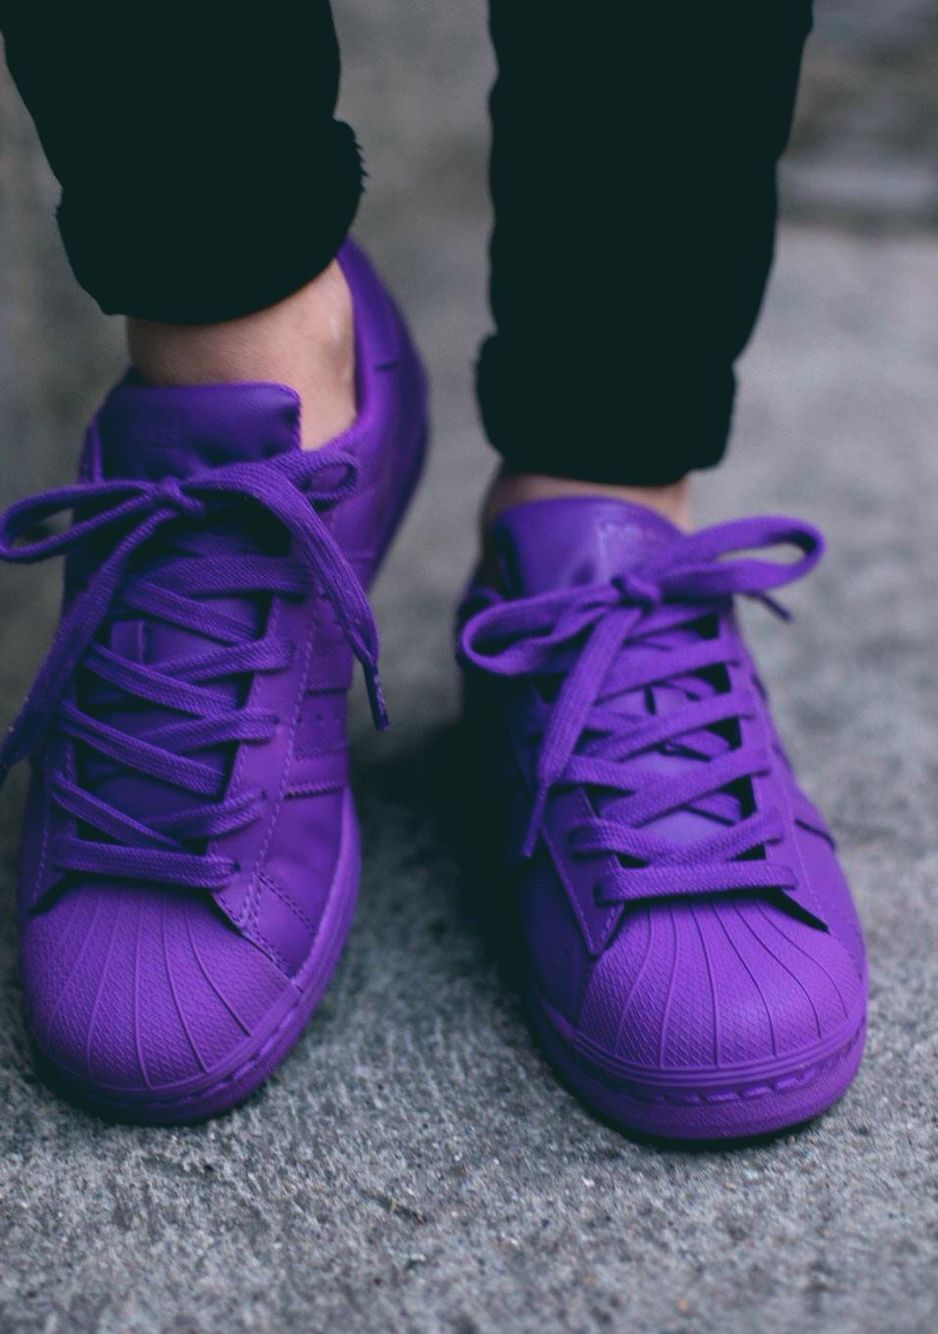 5a215711b40d Pharrell Williams x adidas Originals Superstars  Purple